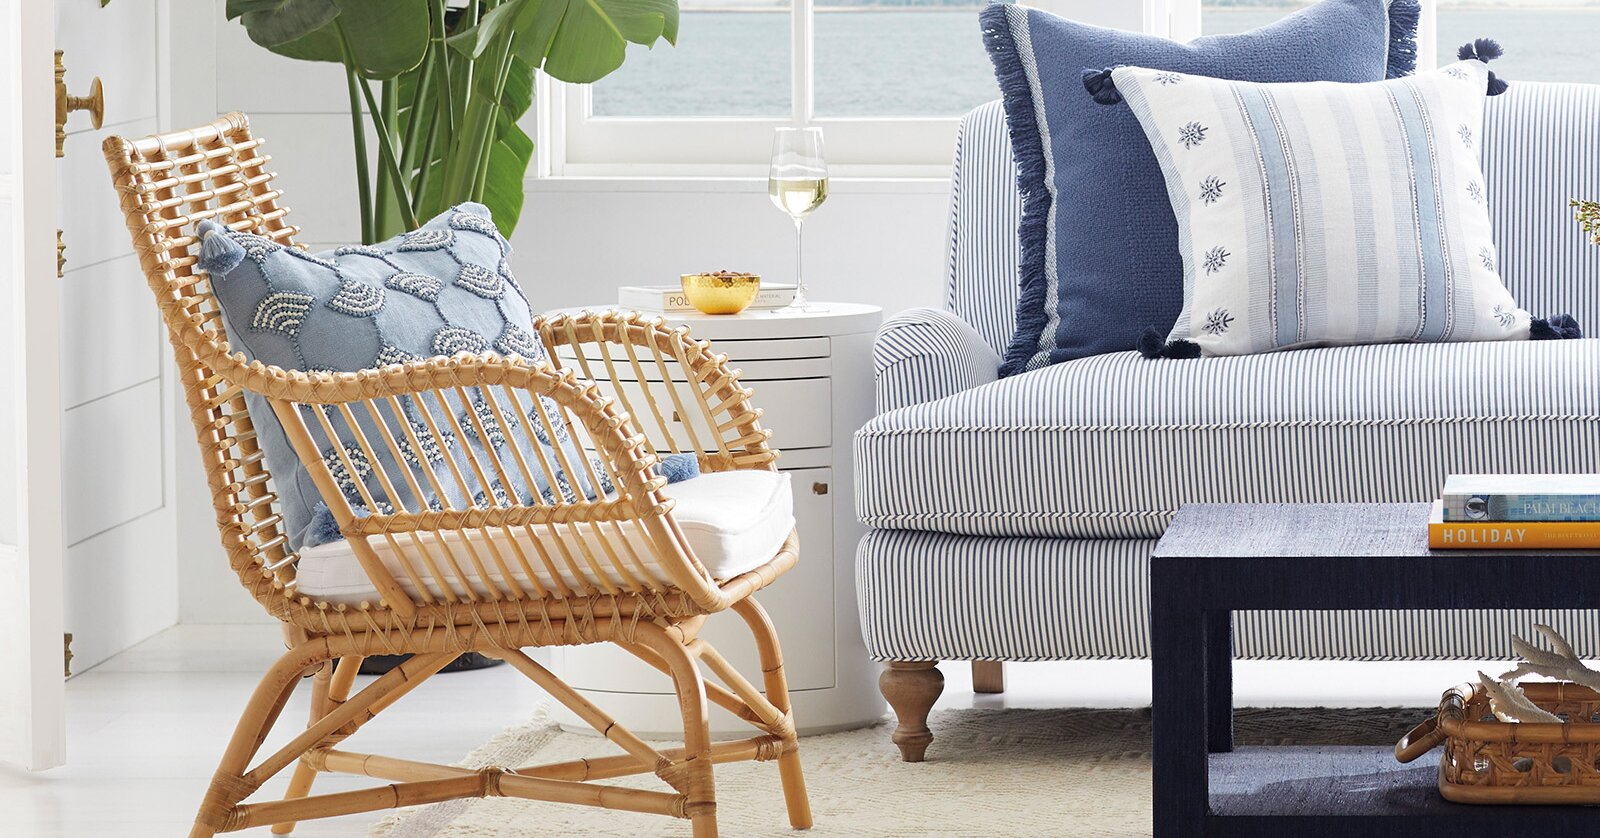 Rattan Furniture is Having a Moment, and We Are All About It